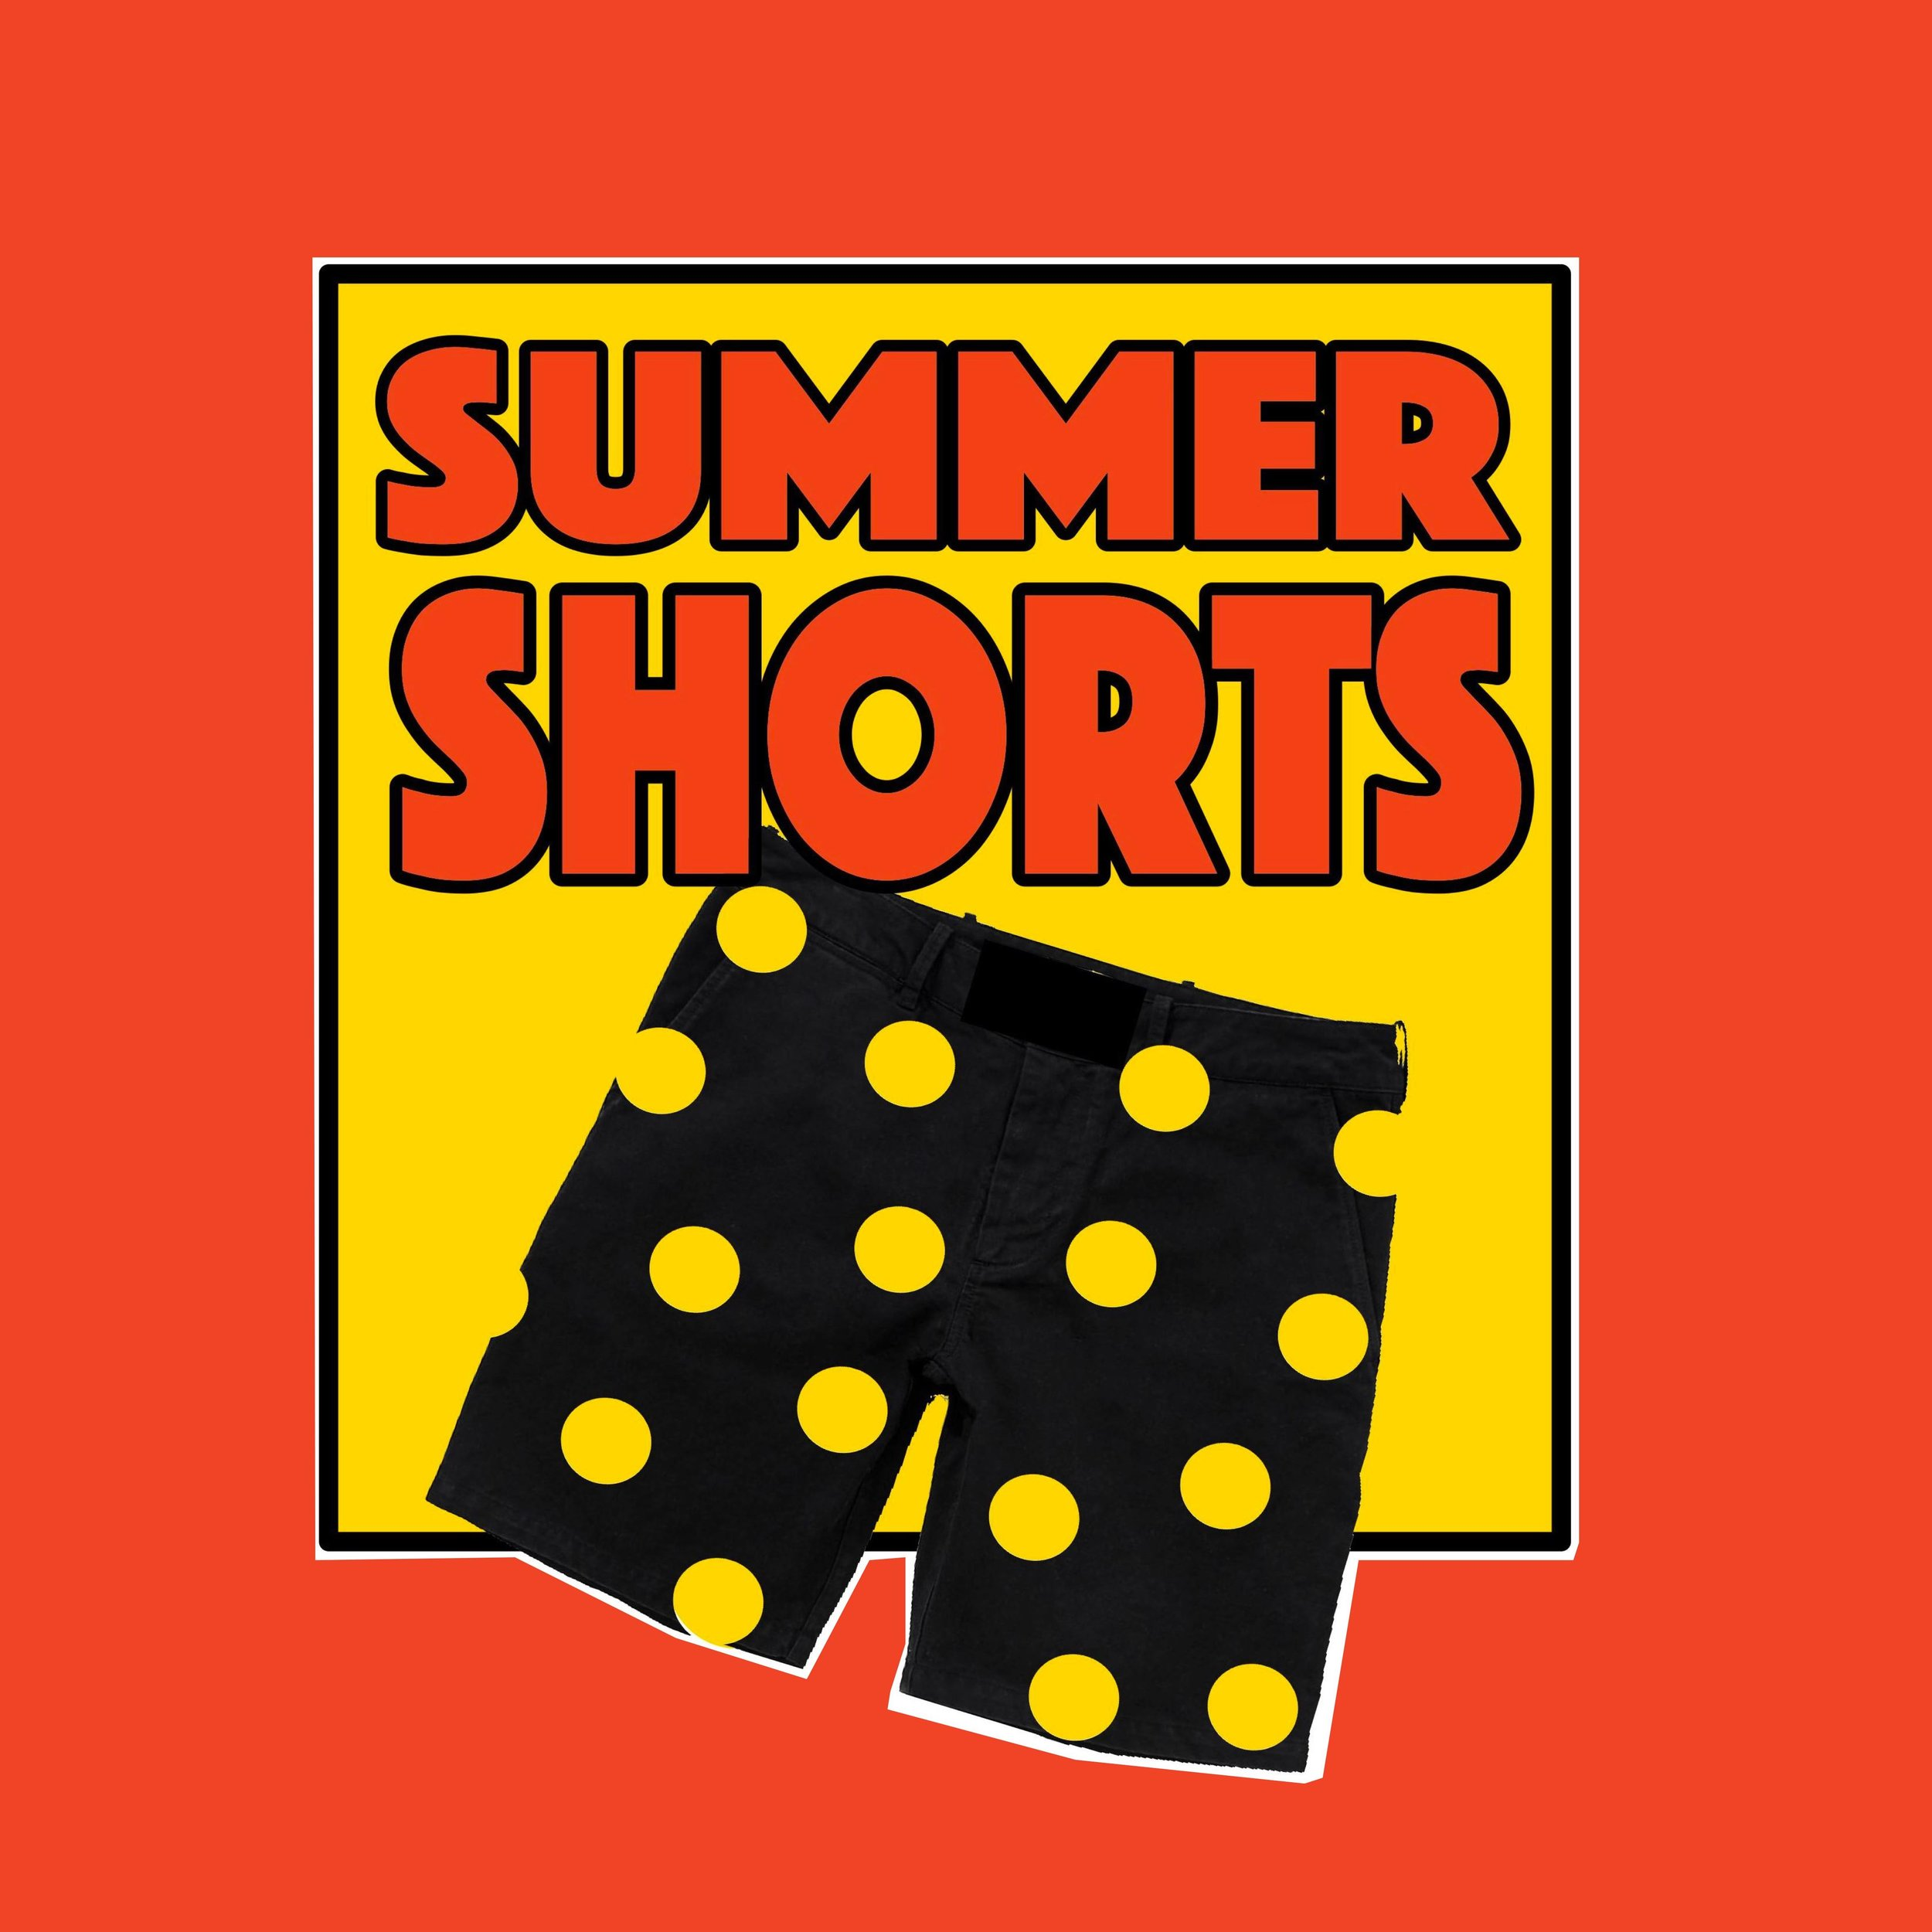 Summer Shorts! - Directed by Putnam SmithPerformances: Friday, August 16th 6pm + Saturday, August 17th 2pm & 6pmSponsored by the Brattleboro Outlet Center